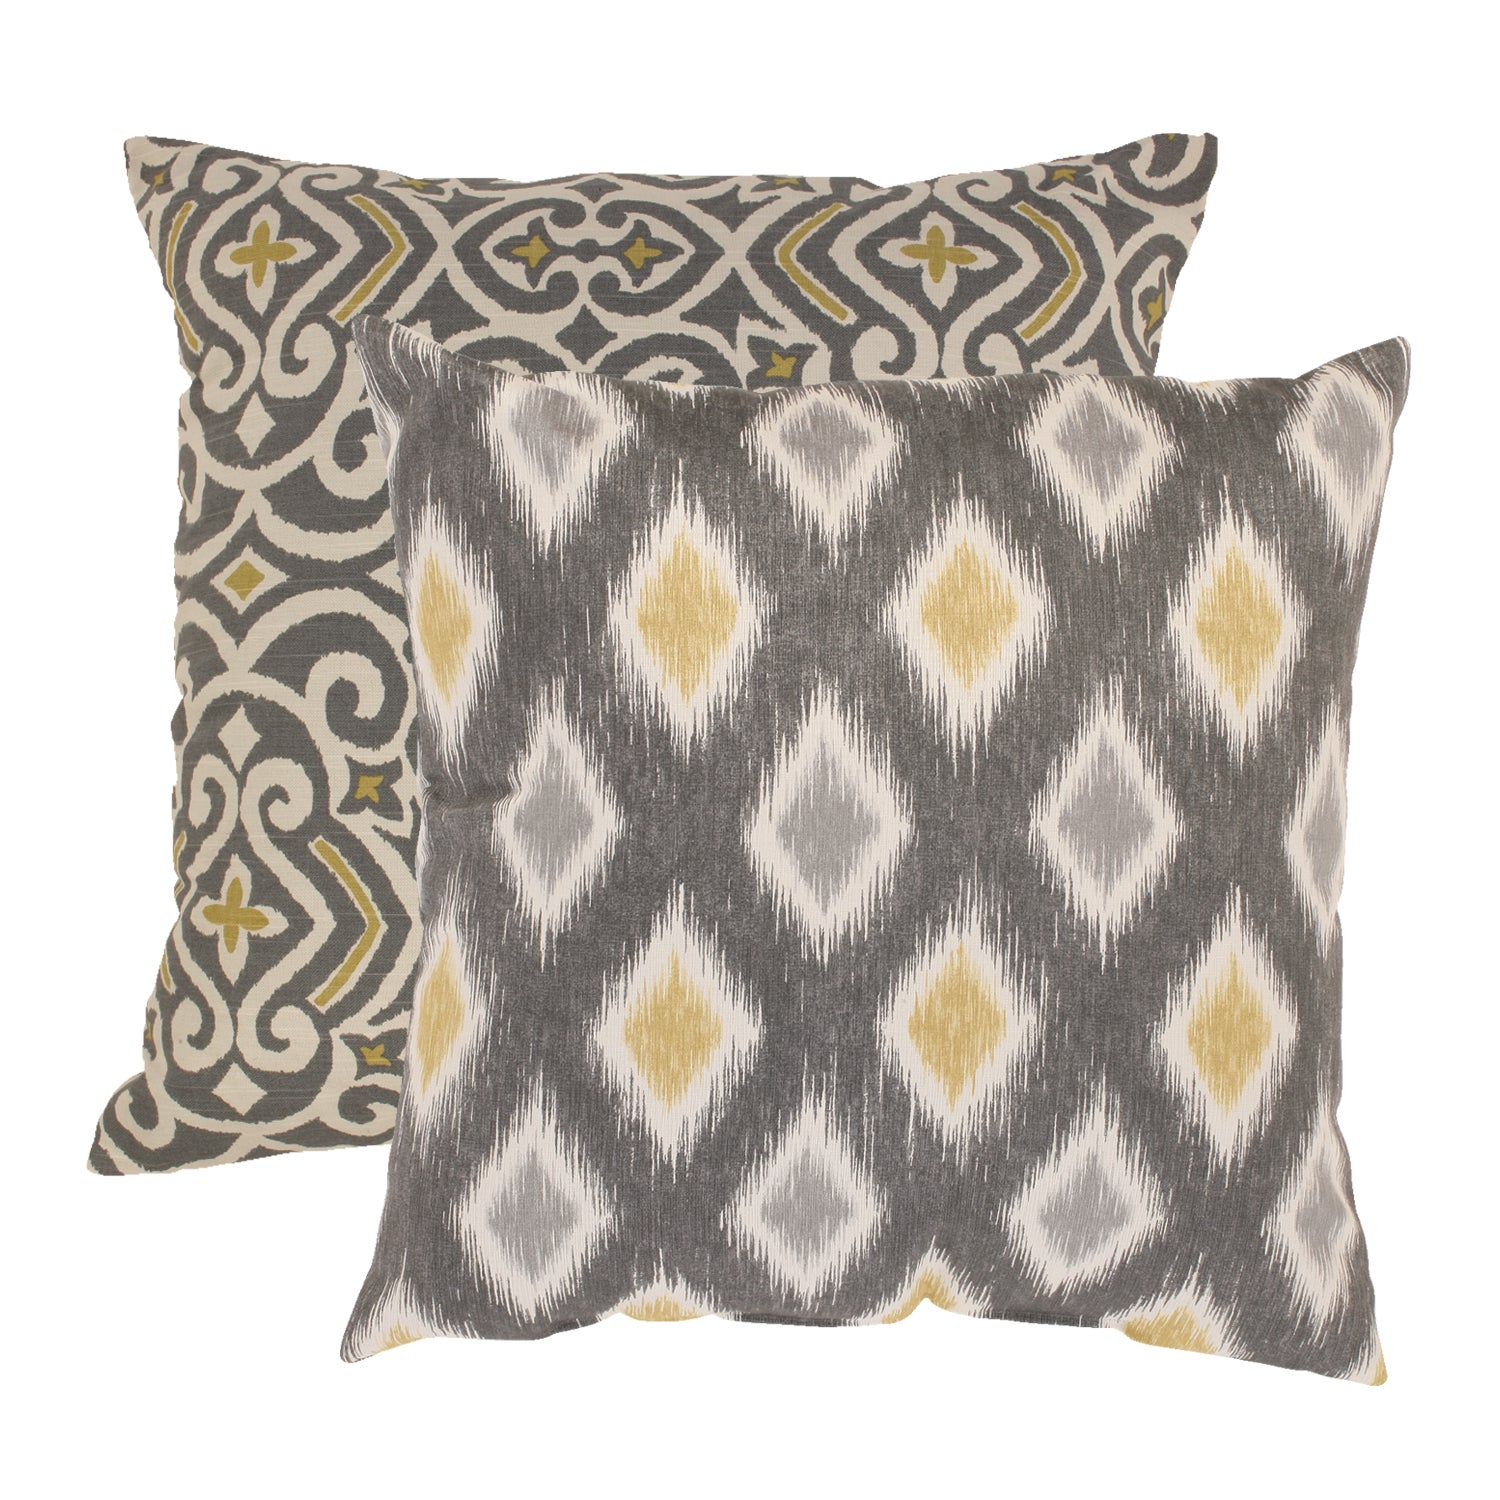 Shop pillow perfect 39 damask 39 and 39 rodrigo 39 throw pillows set of 2 free shipping today - What is a throw pillow ...